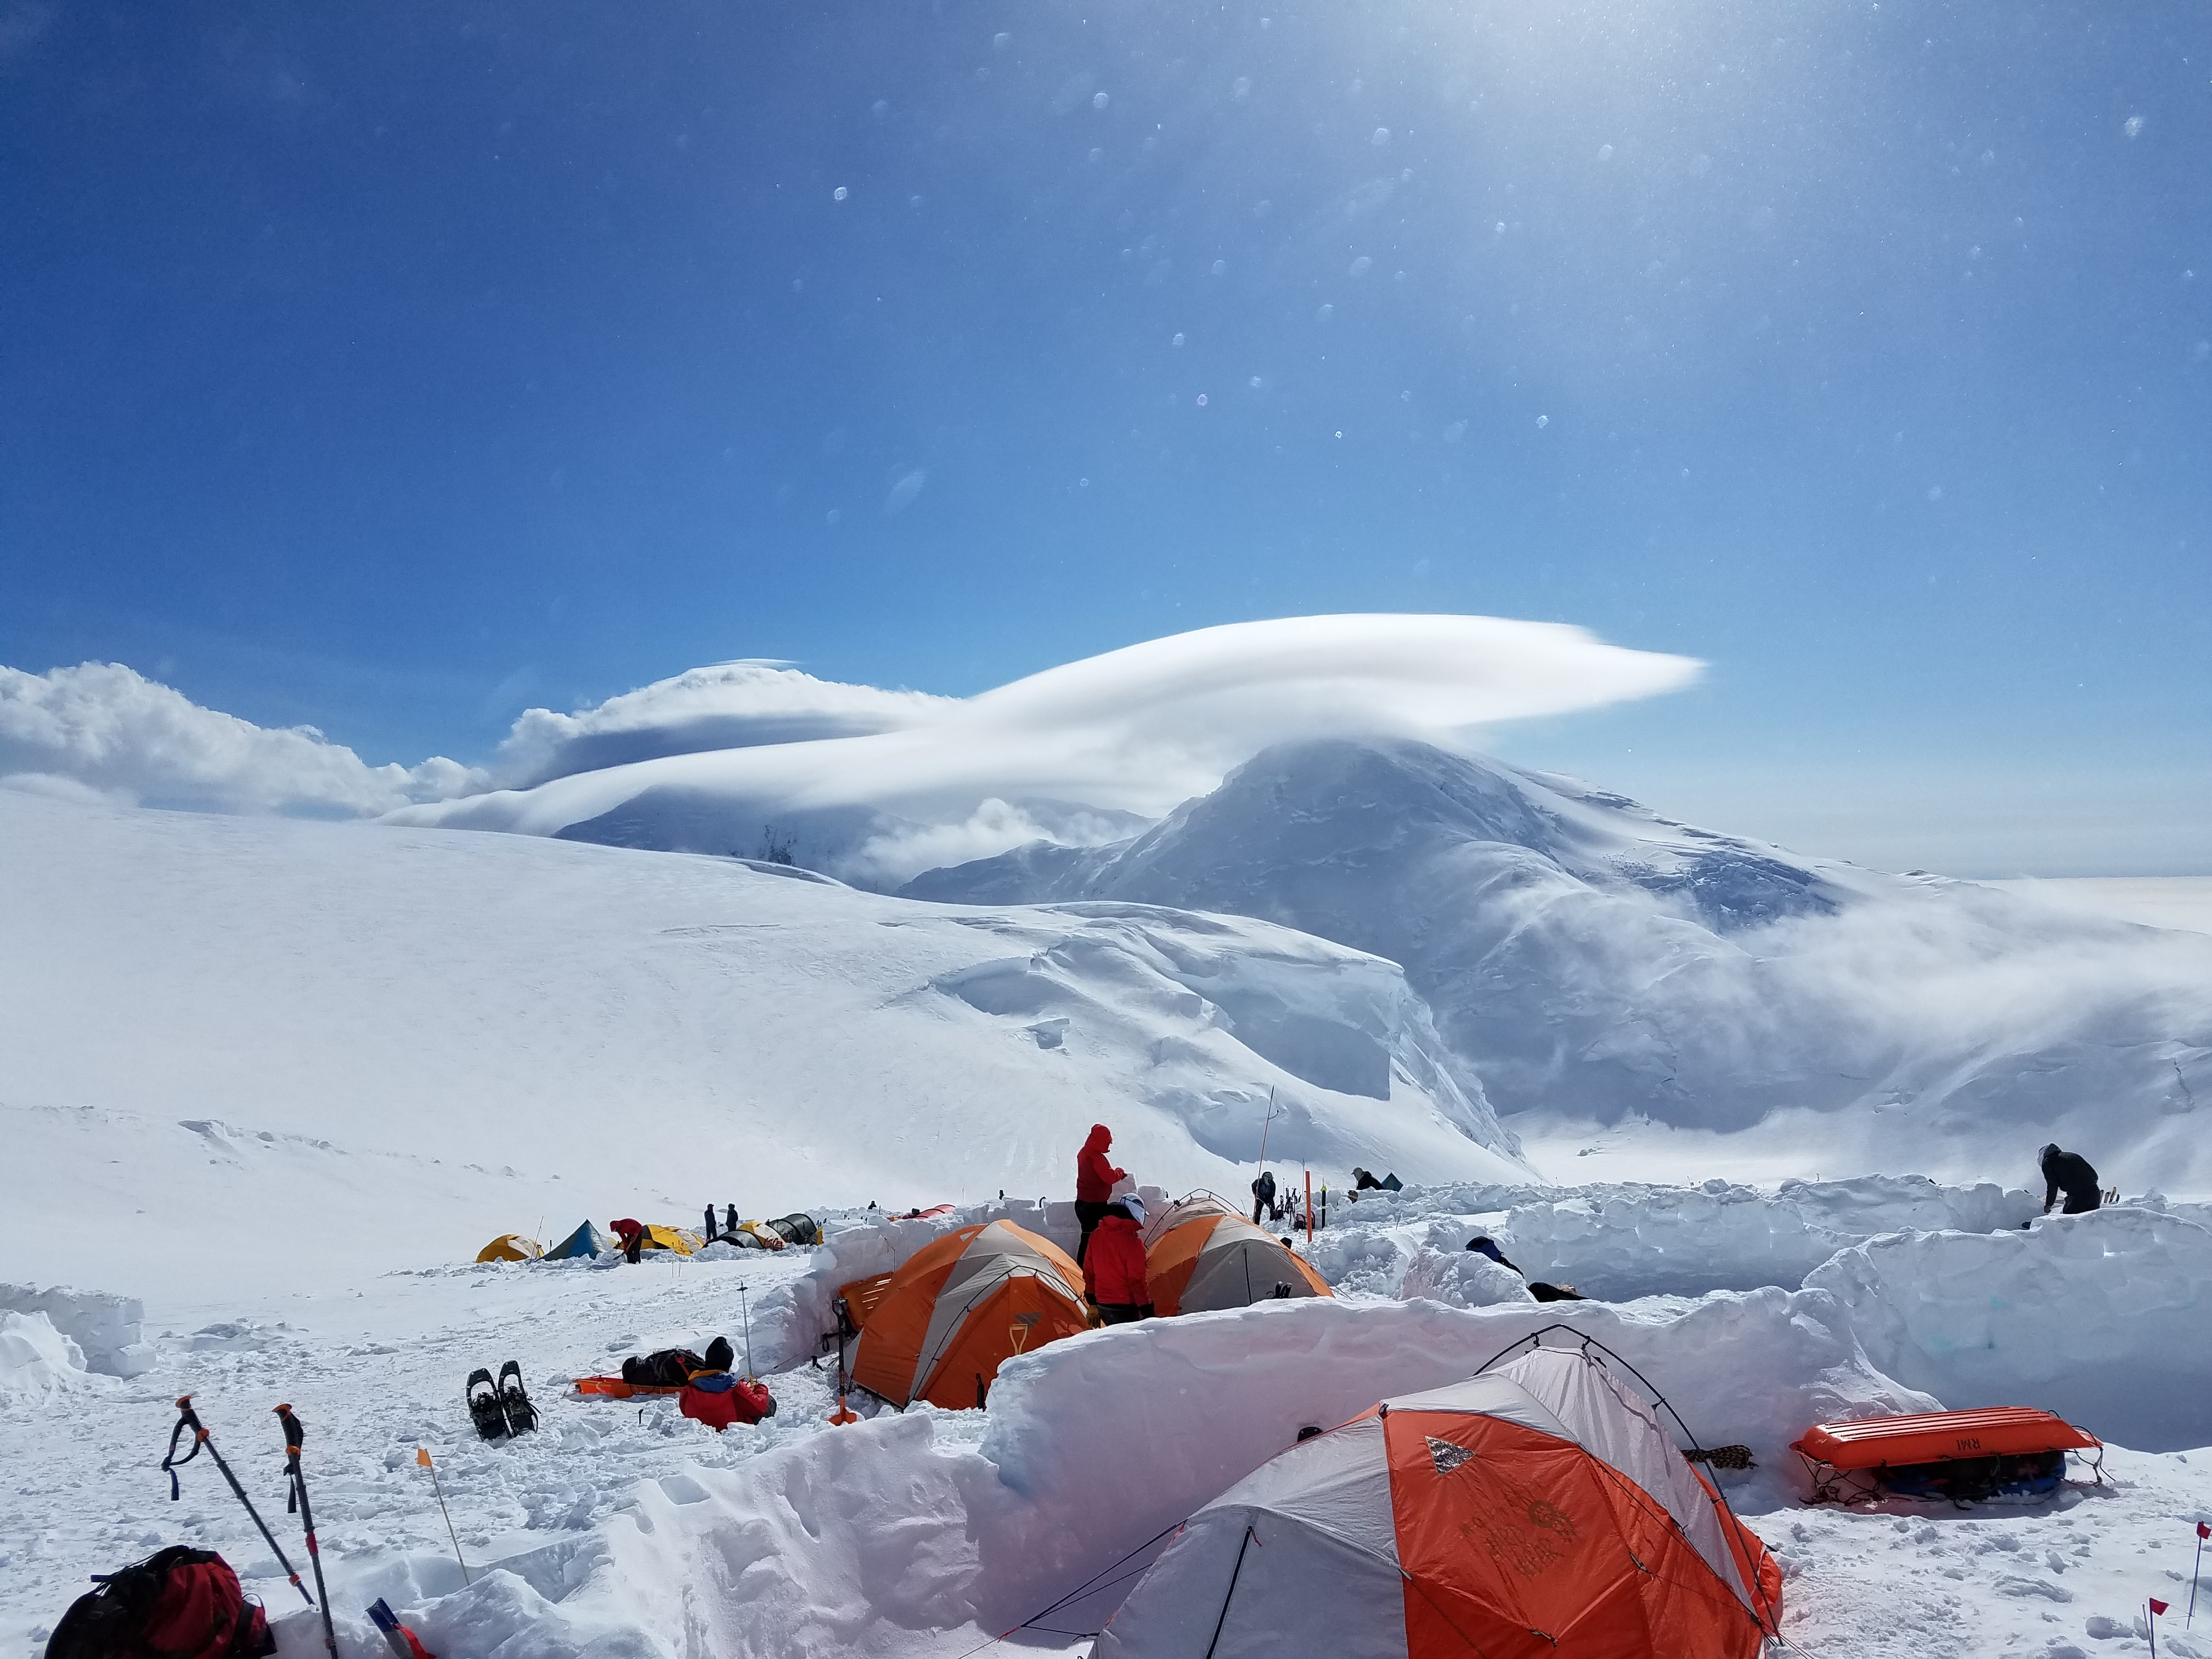 group of people camping on snow mountains